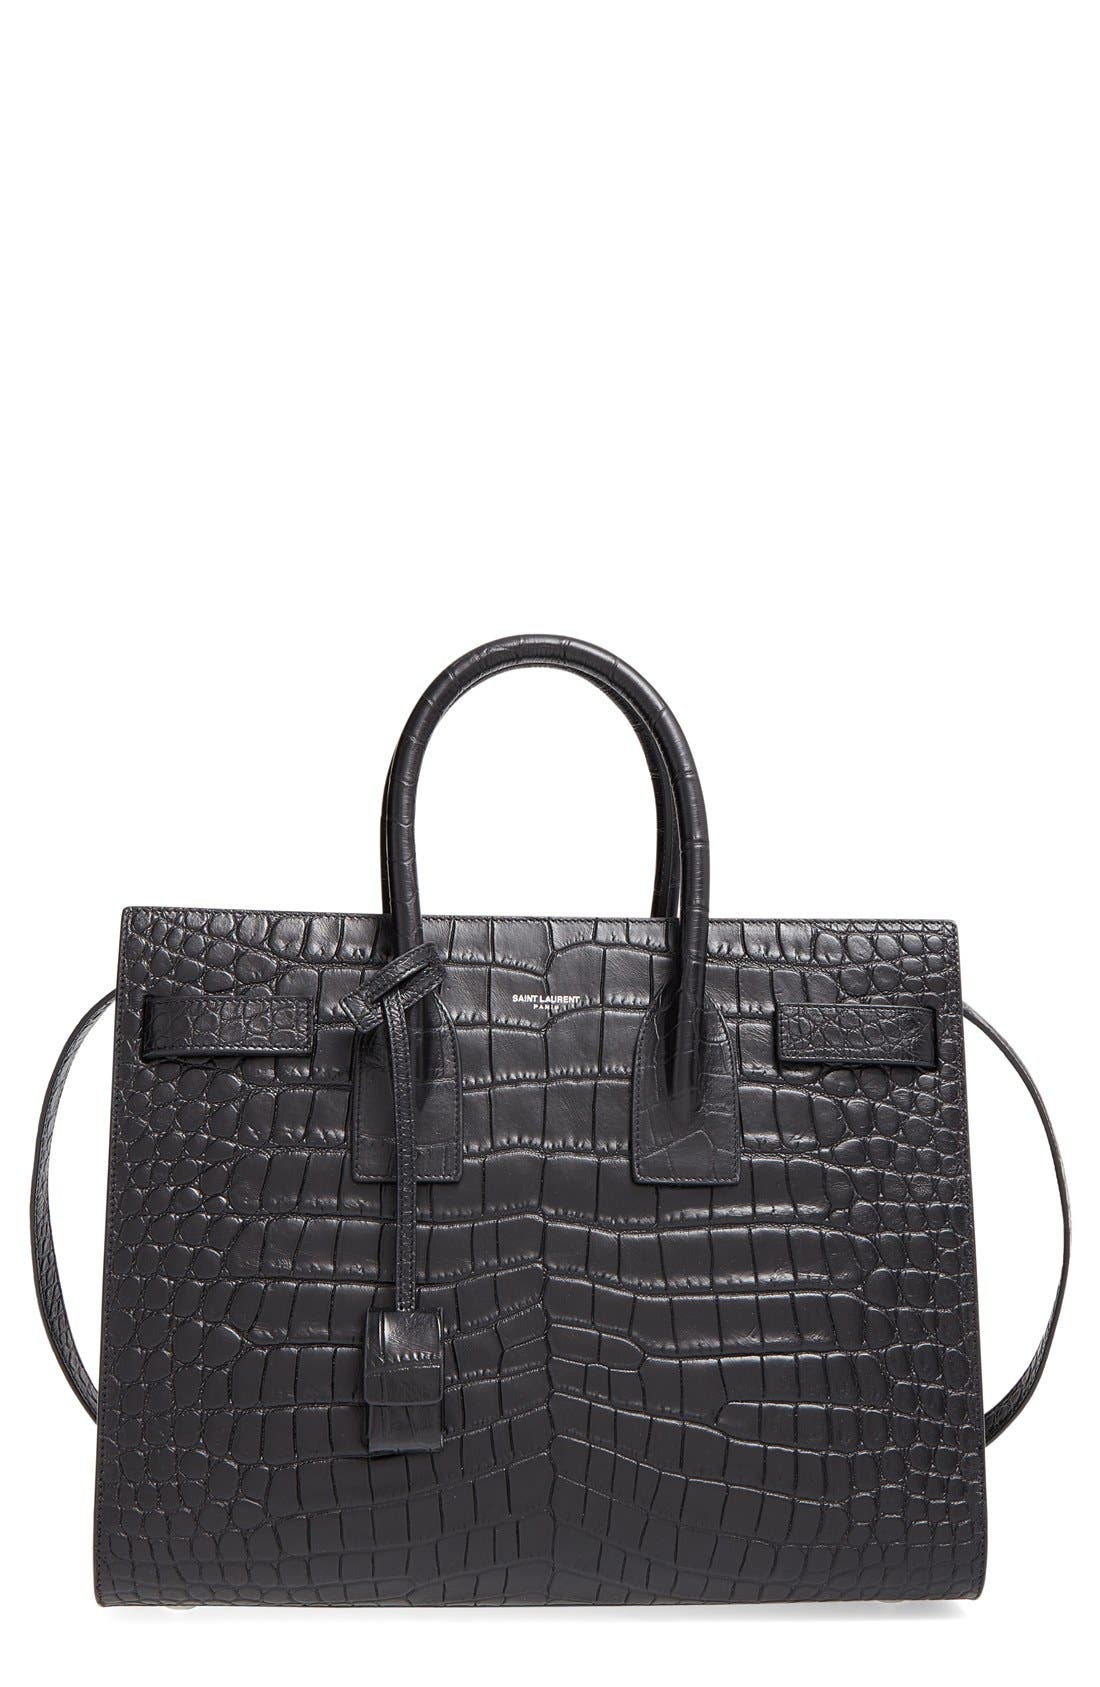 'Small Sac de Jour' Croc Embossed Leather Tote,                         Main,                         color, Noir